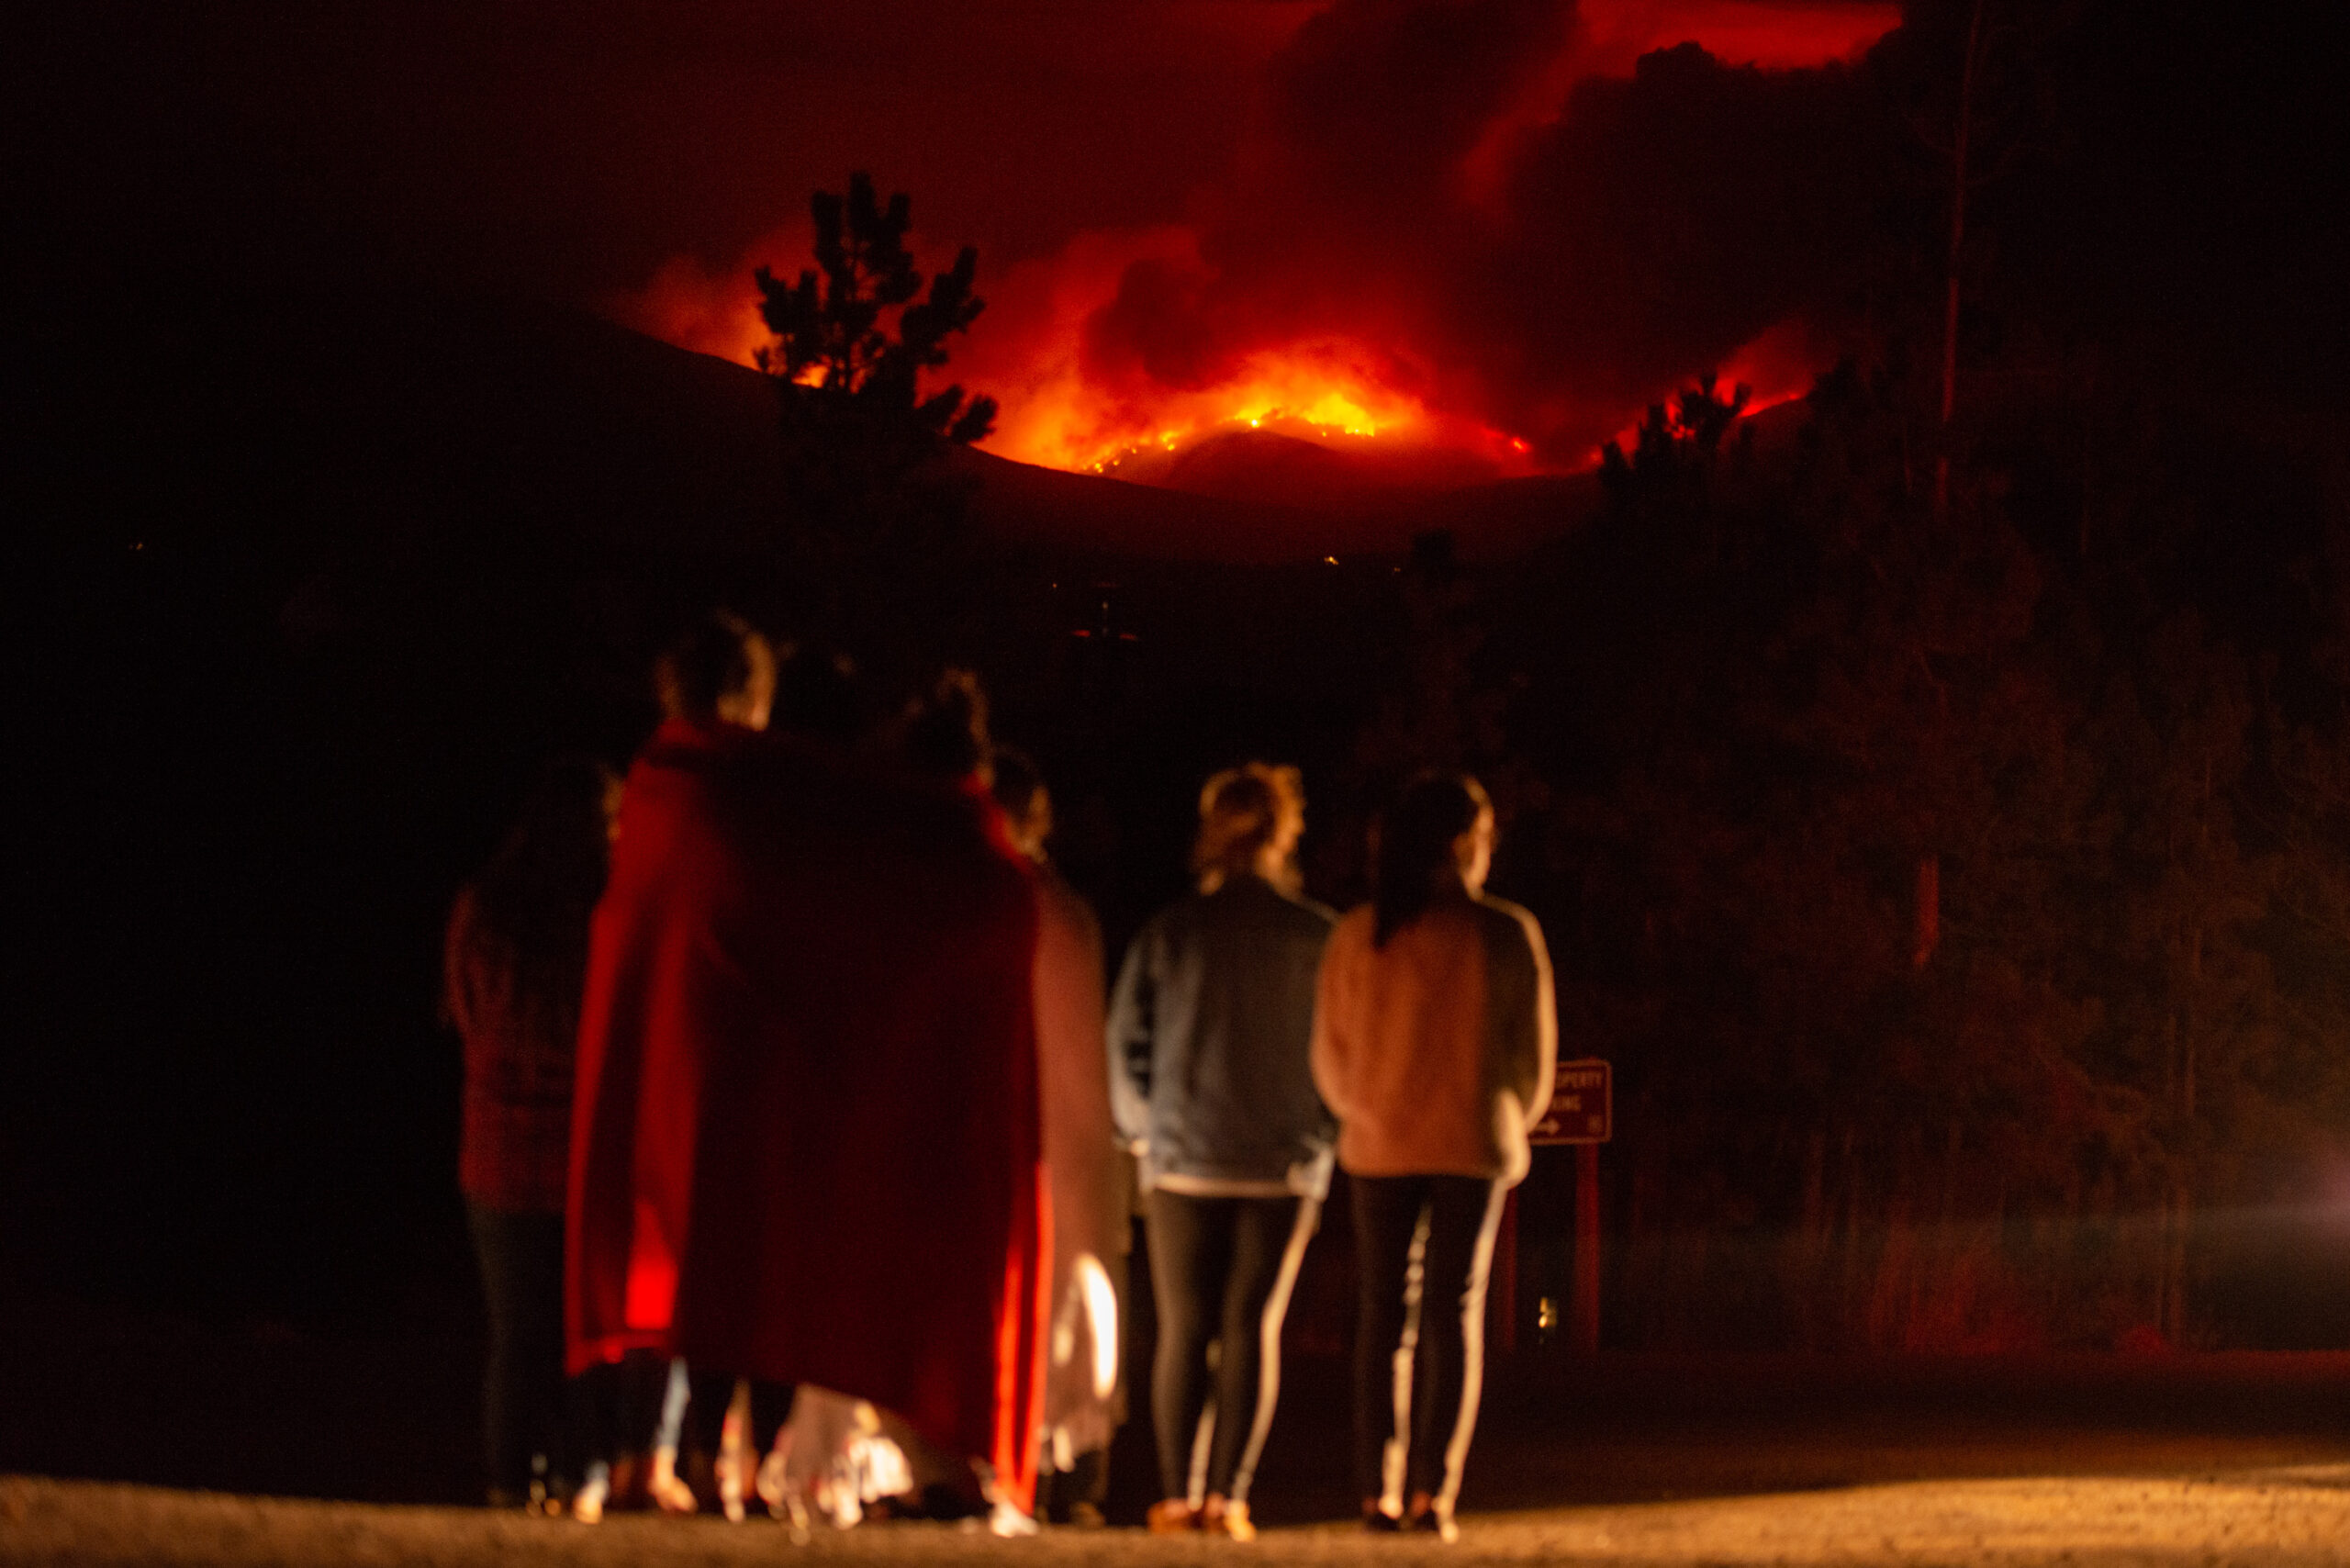 Onlookers watch the Cameron Peak fire from Pole Hill Road as it burns north of Estes Park on Wednesday, Oct. 14, 2020.